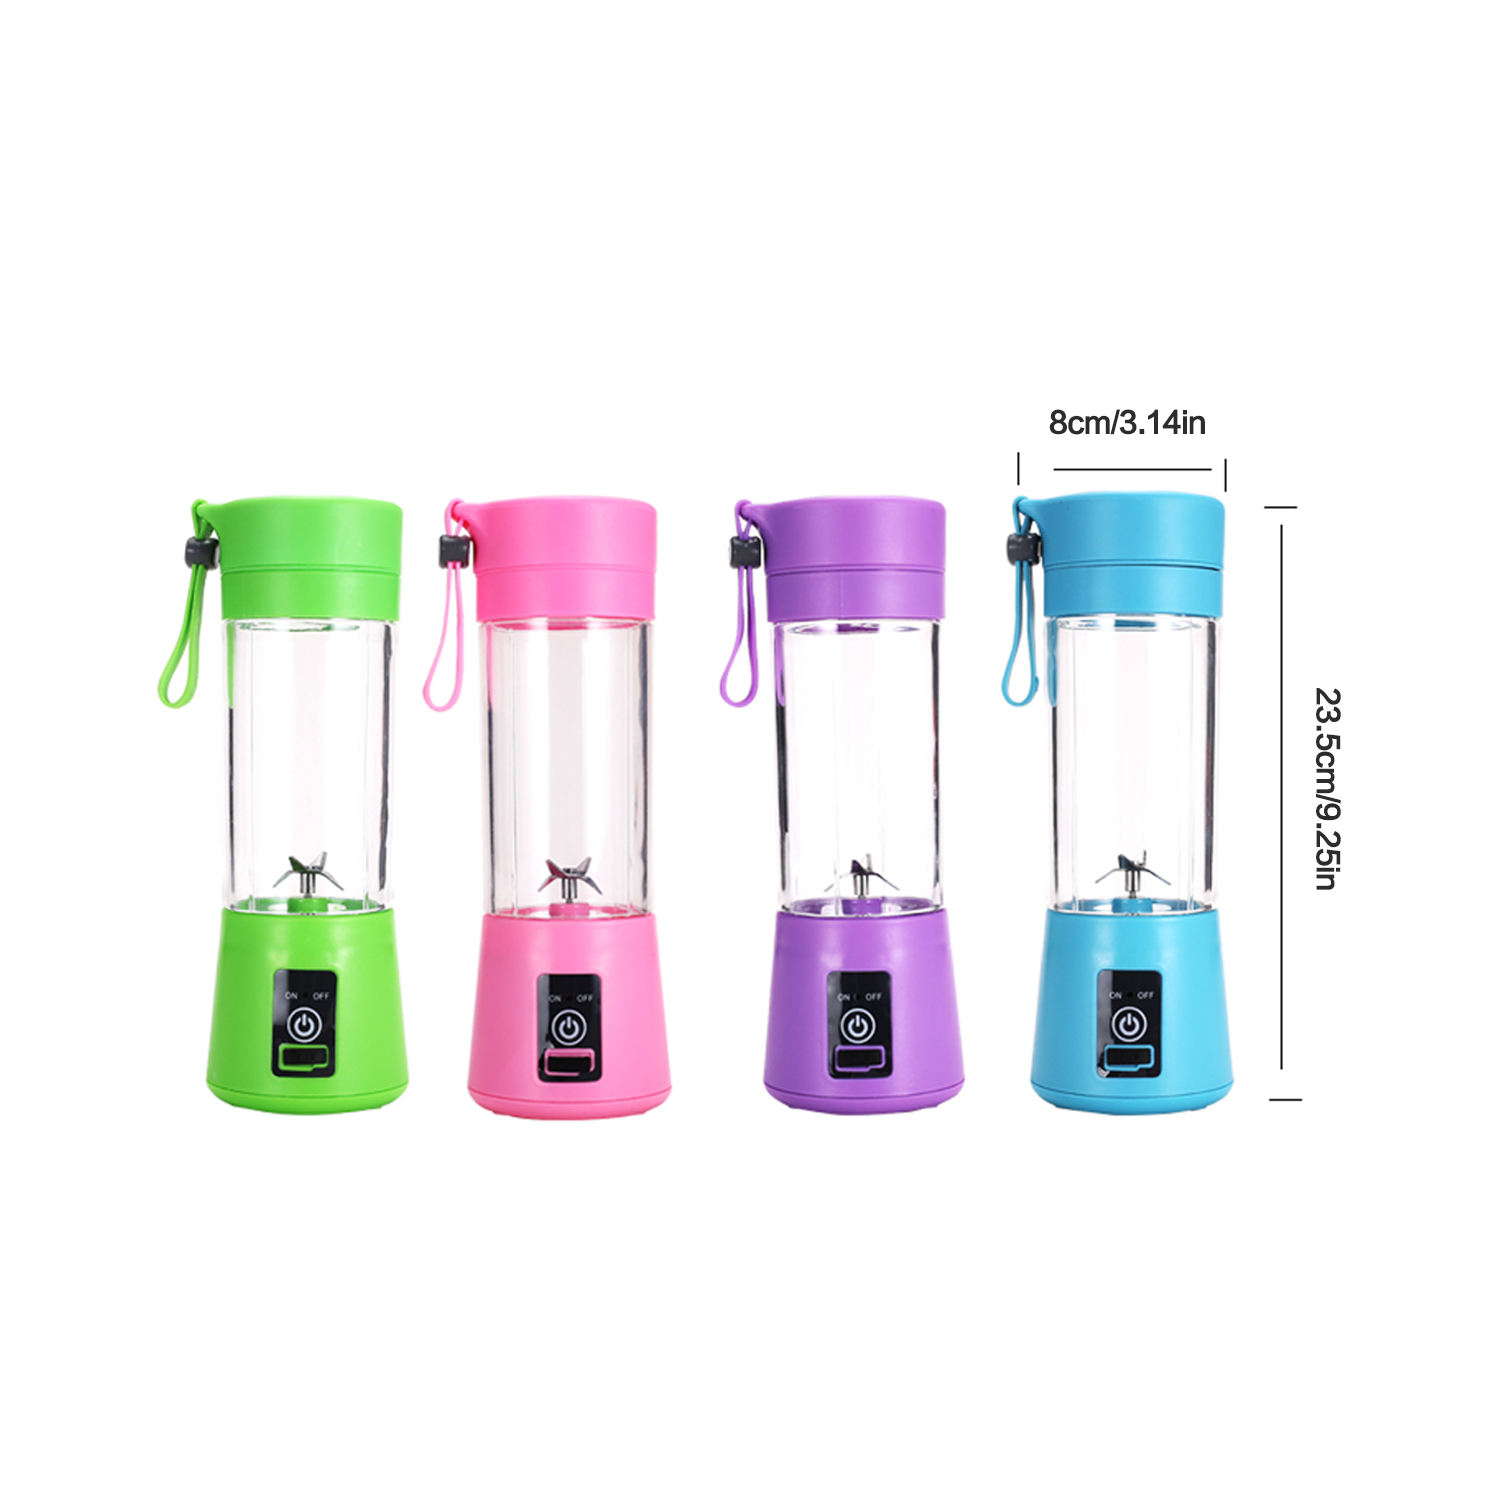 2020 Newly Design household Portable Juicer Blender Household Fruit Mixer- Six Blades in 3D 380ml USB Juicer Cup